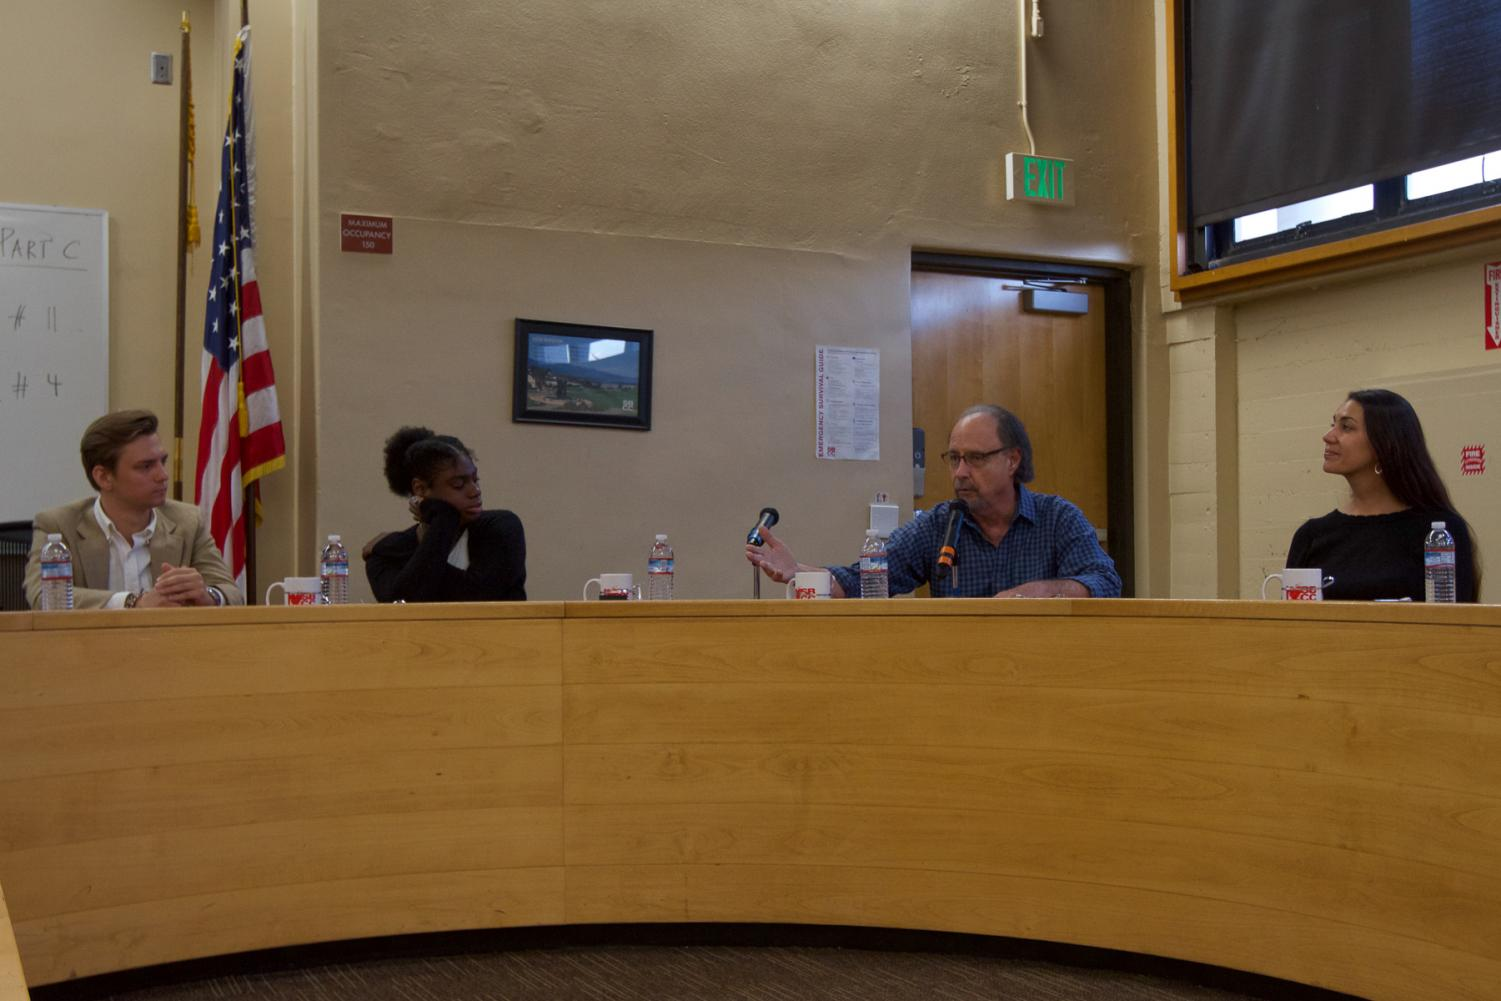 Second from right, Therapist and Antioch University Professor, Stuart Light addresses the alcohol problem within the college community and says that it correlates with social anxiety on Wednesday, Oct. 16, 2019, in the administration building at City College in Santa Barbara, Calif. Light was one of the four  panel members to speak for the Movies for Mental Health event.